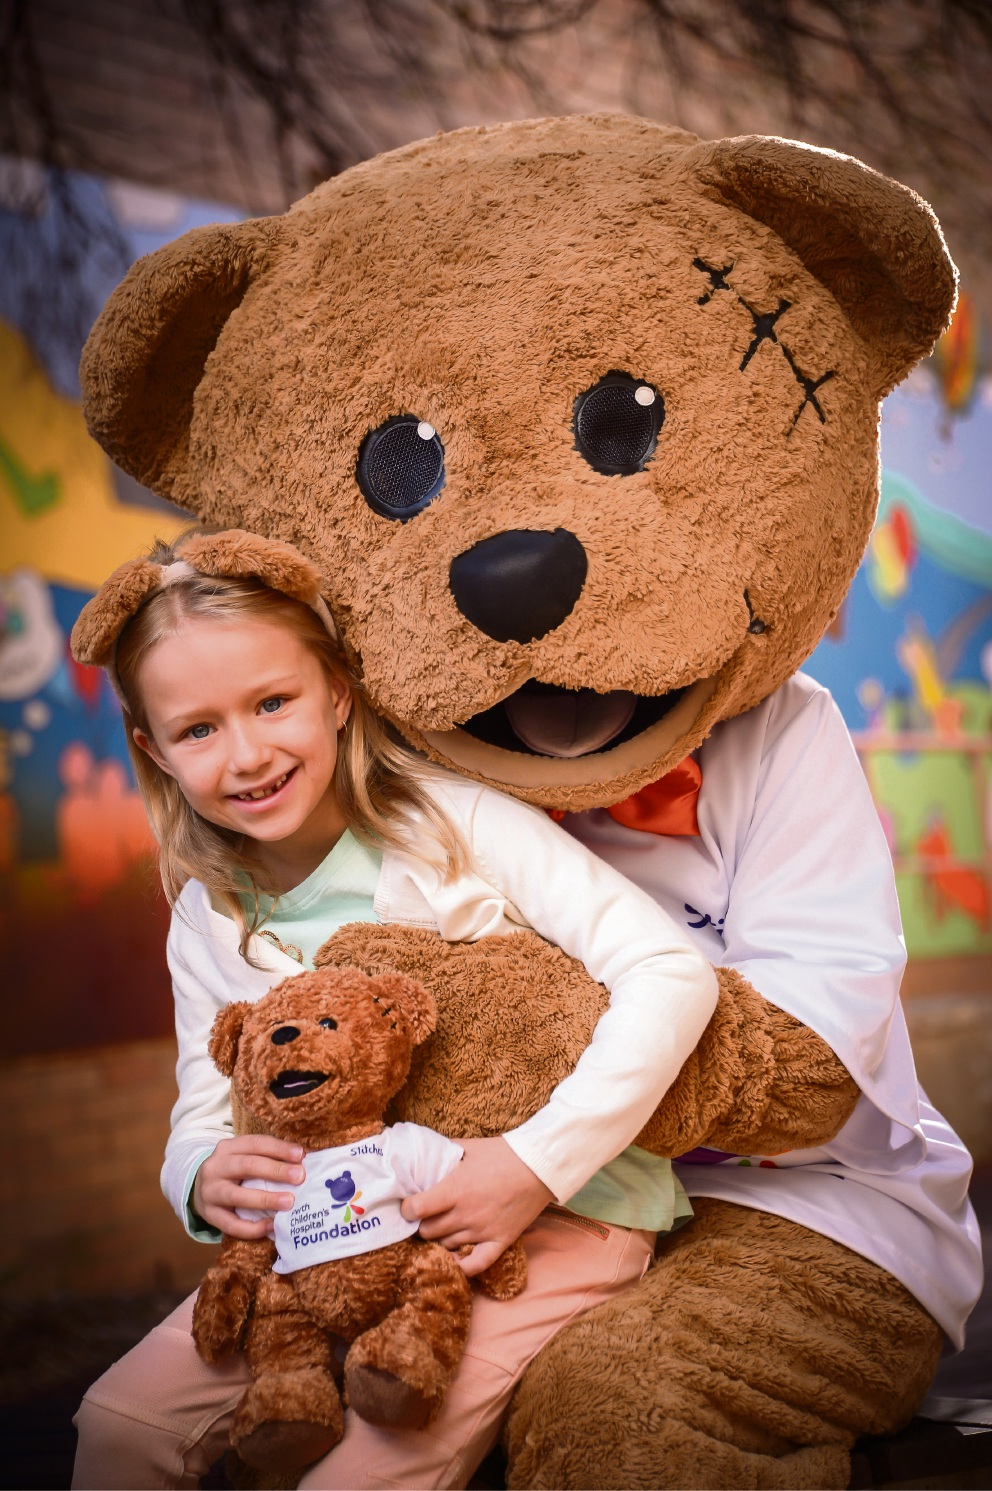 Maya Robertson (8), who suffered second-degree burns on her foot, poses with Stitches the Bear.